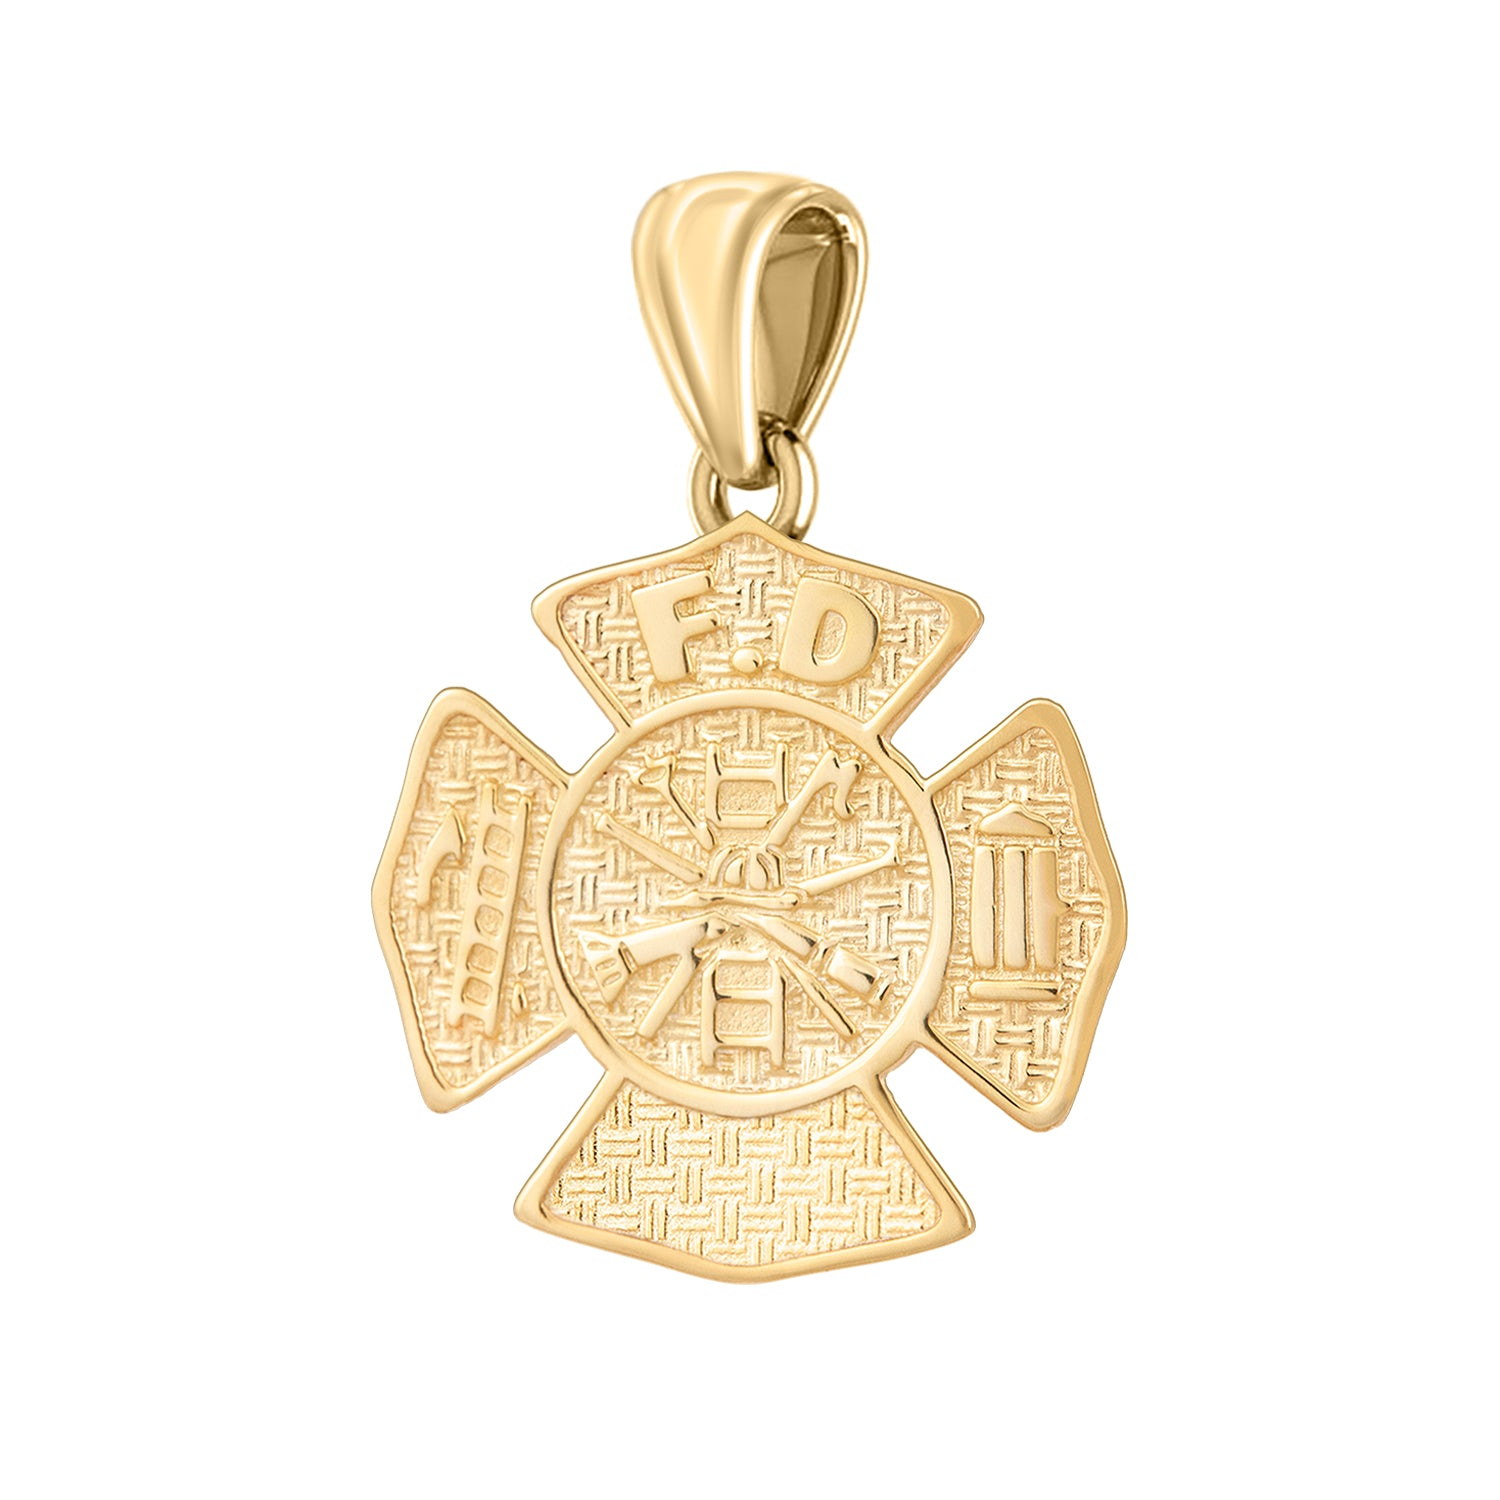 Firefighter Necklace of 26mm in 14k Gold - Pendant Only